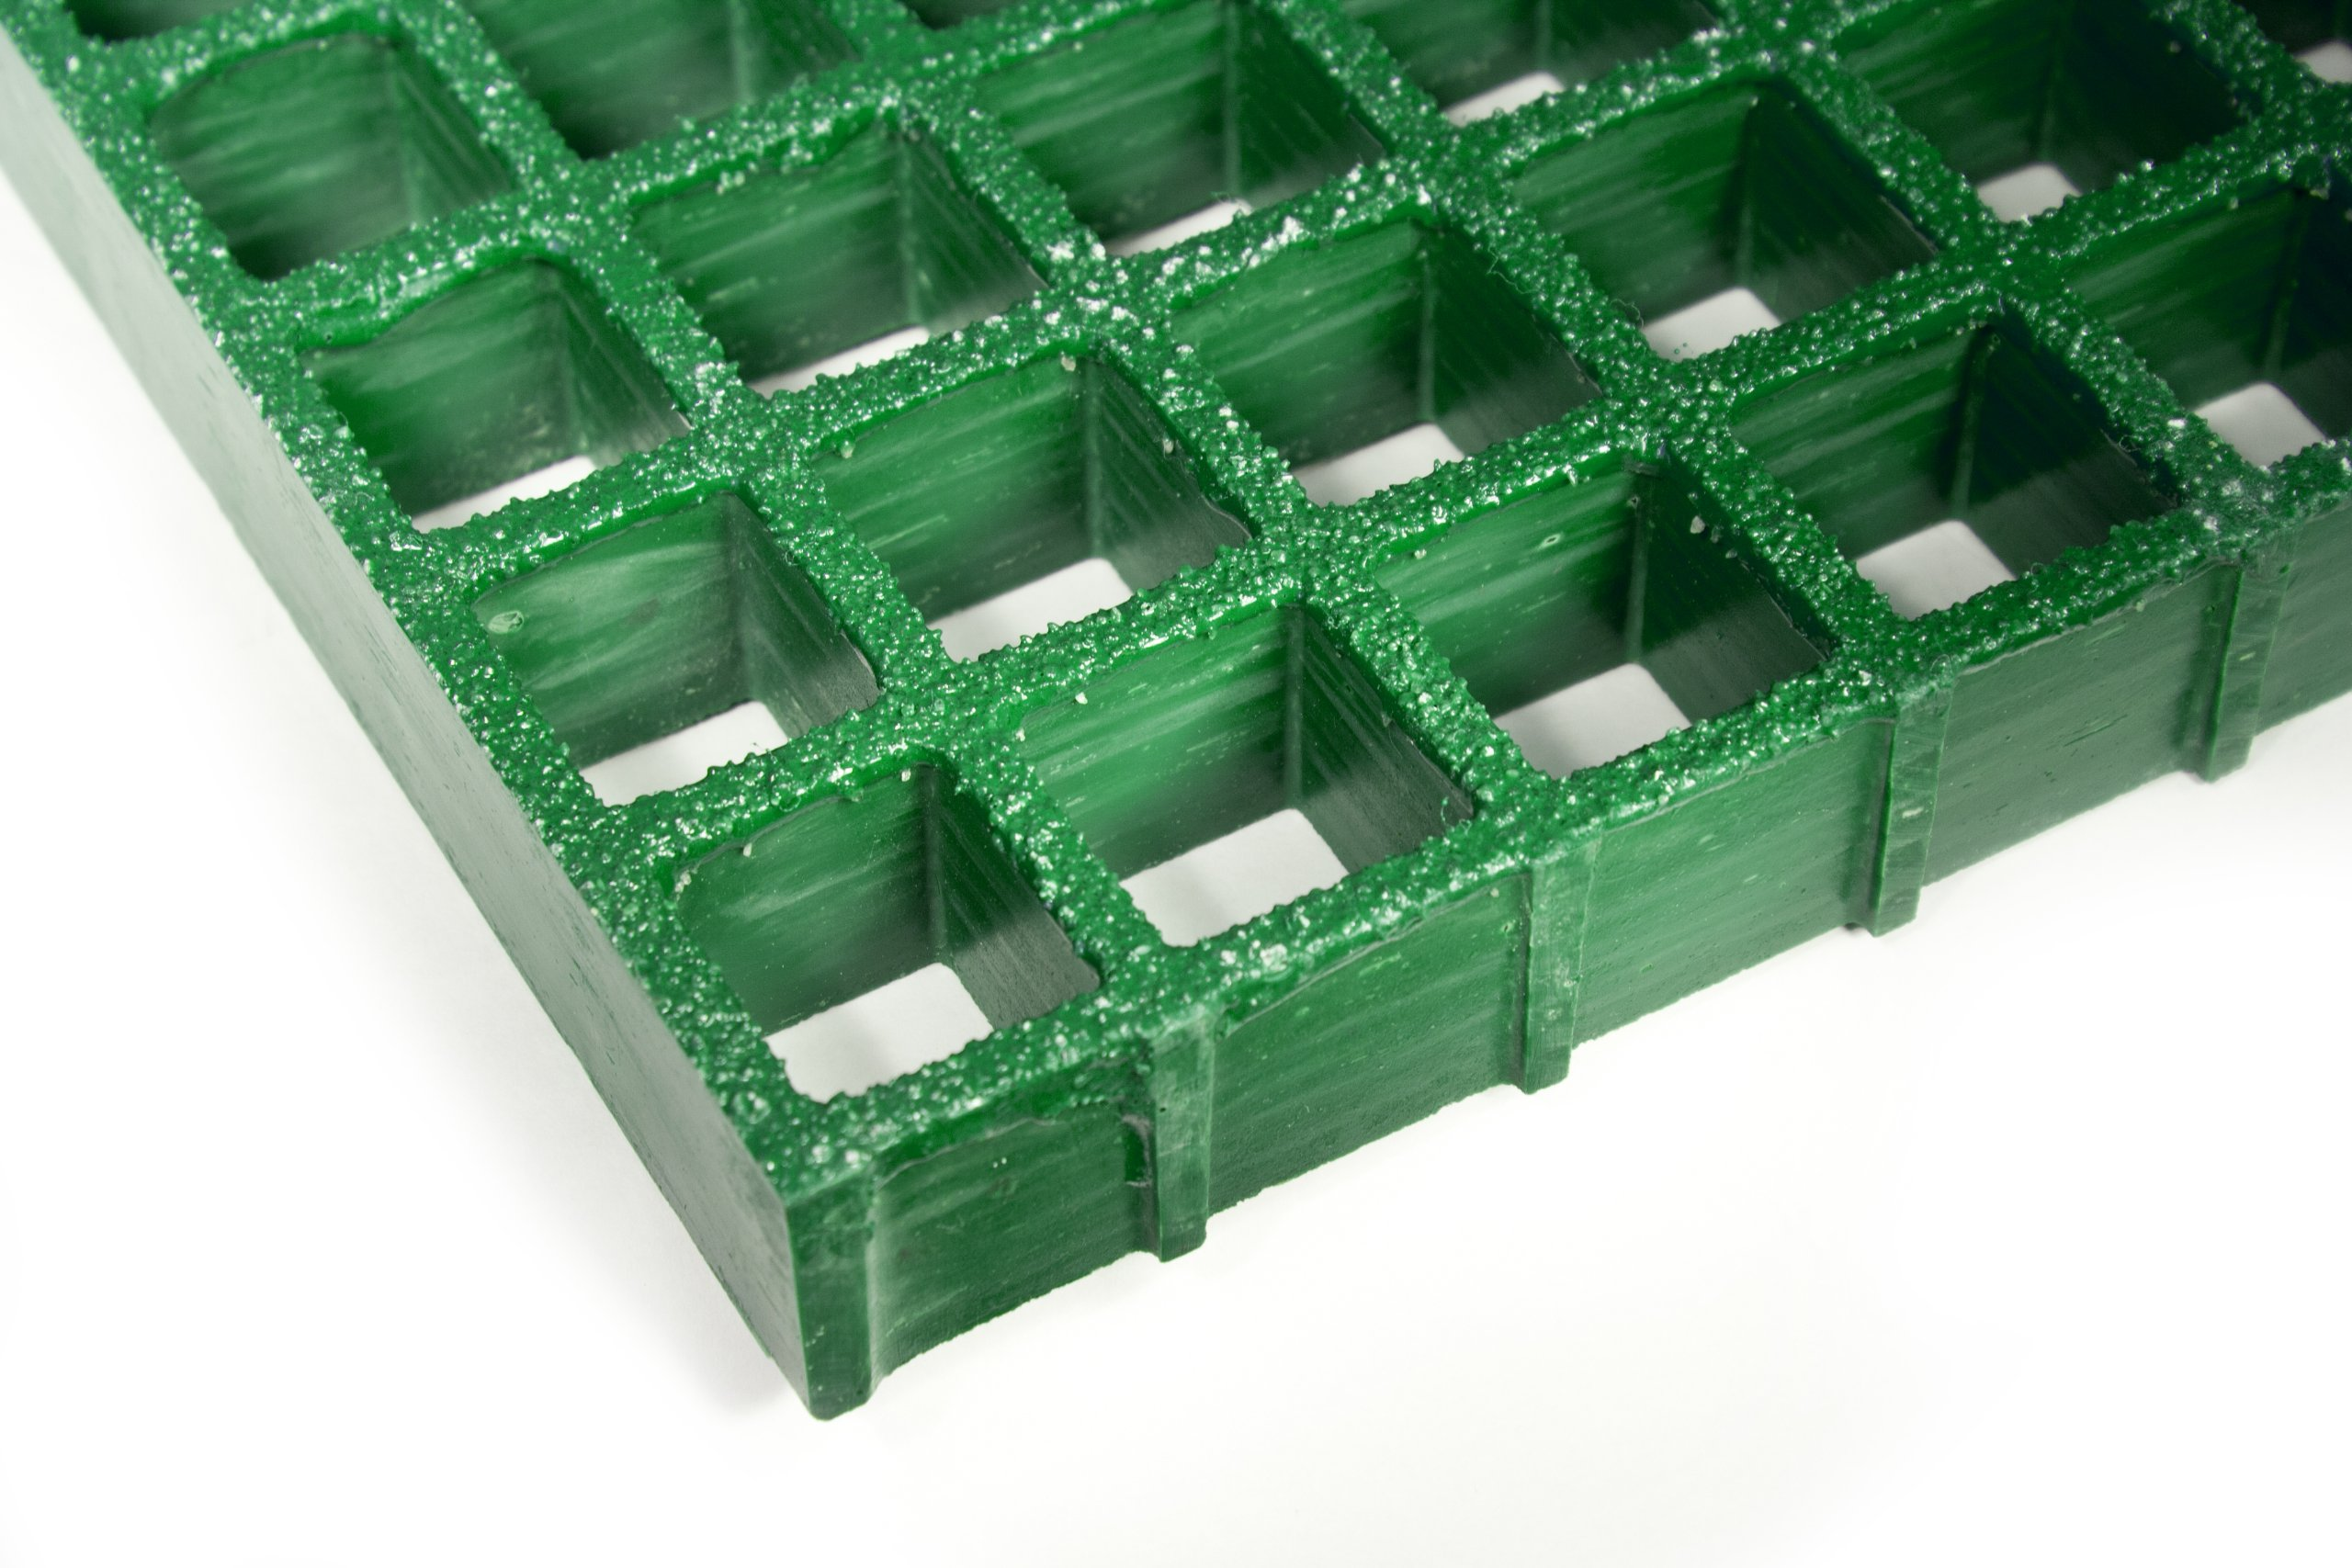 Fiberglass Grating, Standard Tolerance, Green, Grit-Top, 1'' Thickness, 4' Width, 4' Length, 1-1/2'' x 1-1/2'' Openings by Small Parts